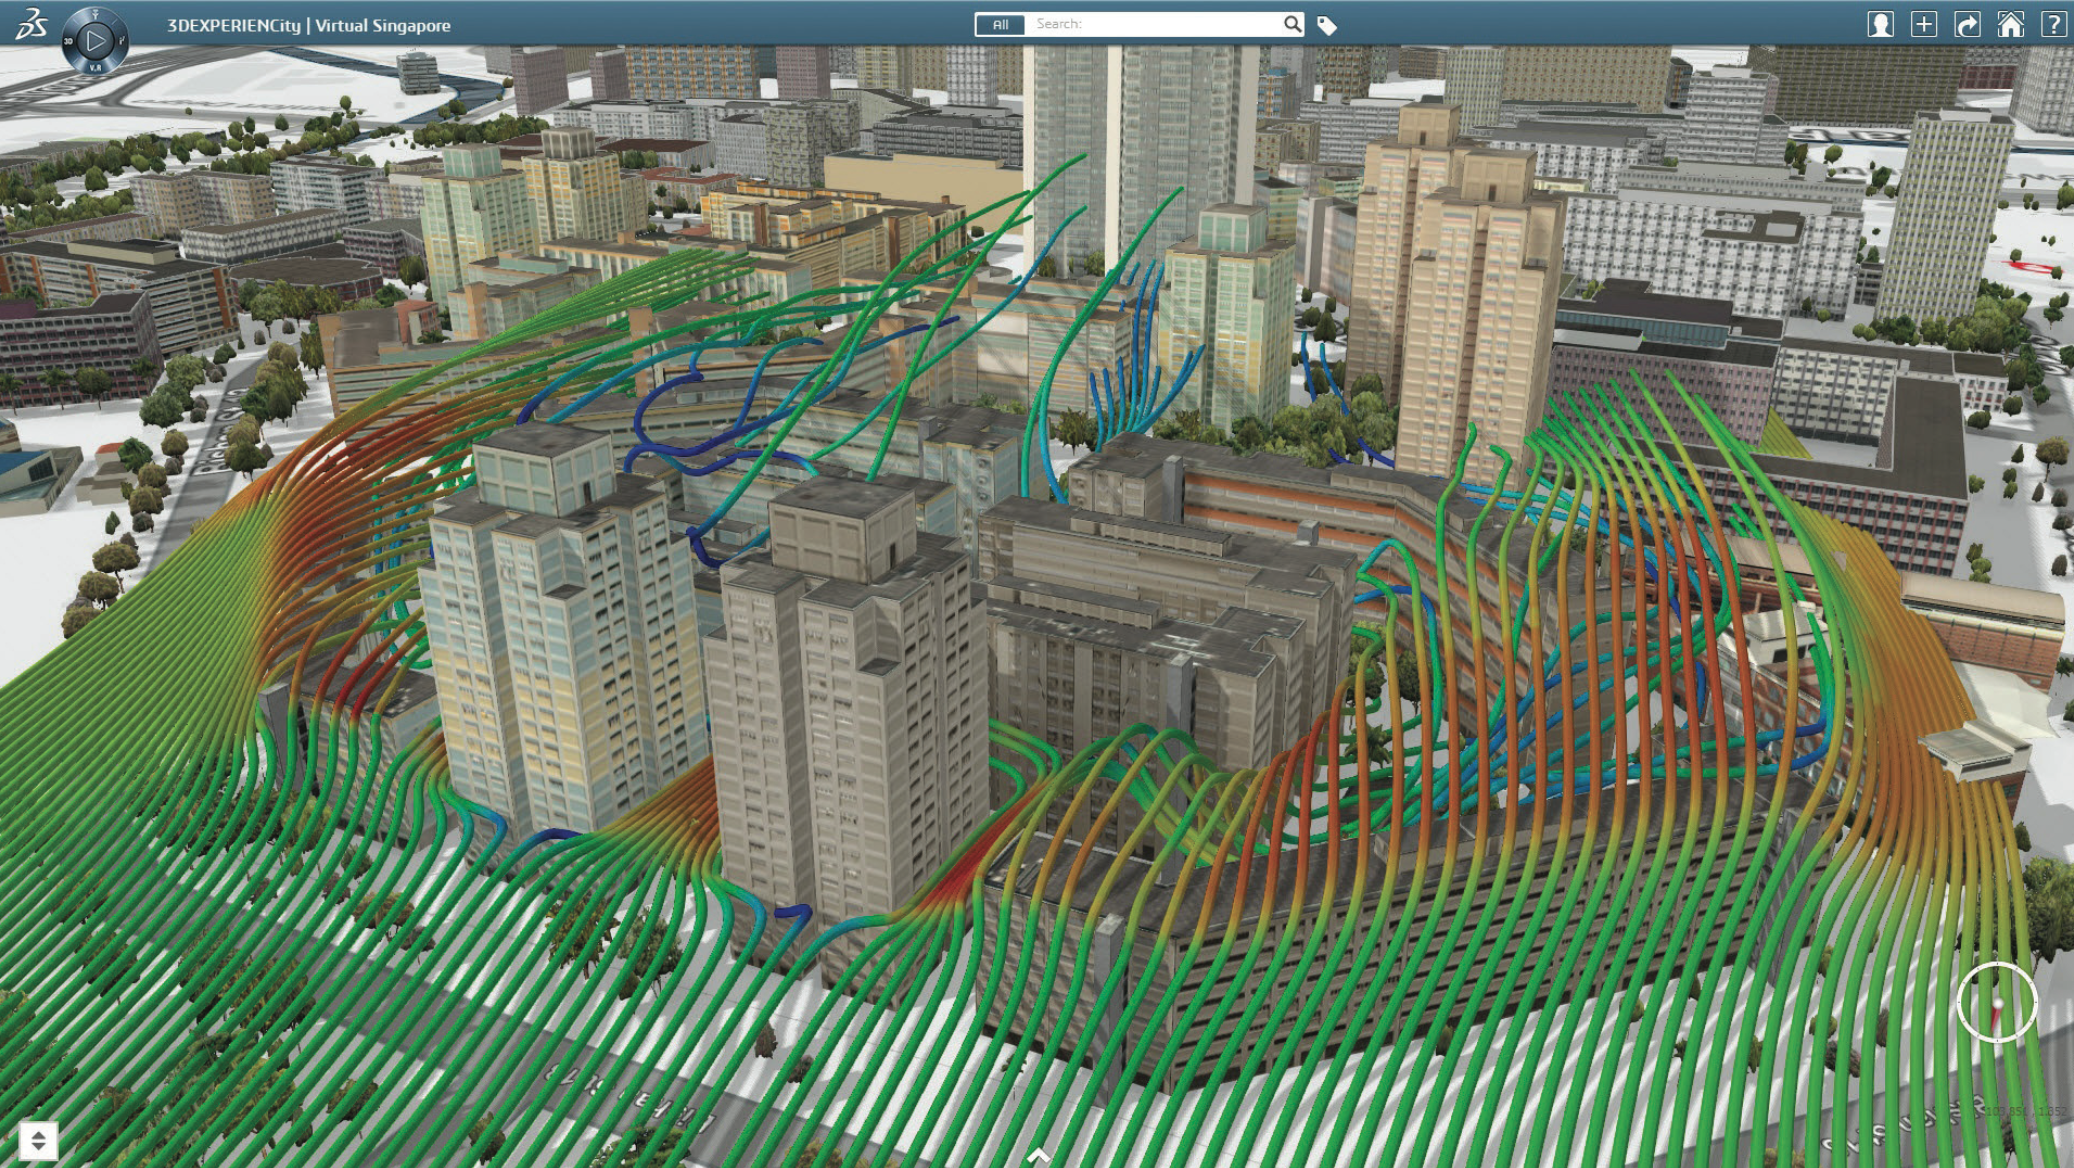 3DEXPERIENCity, Wind Simulation for Singapore City, Singapore. - Urban Settlement PNG